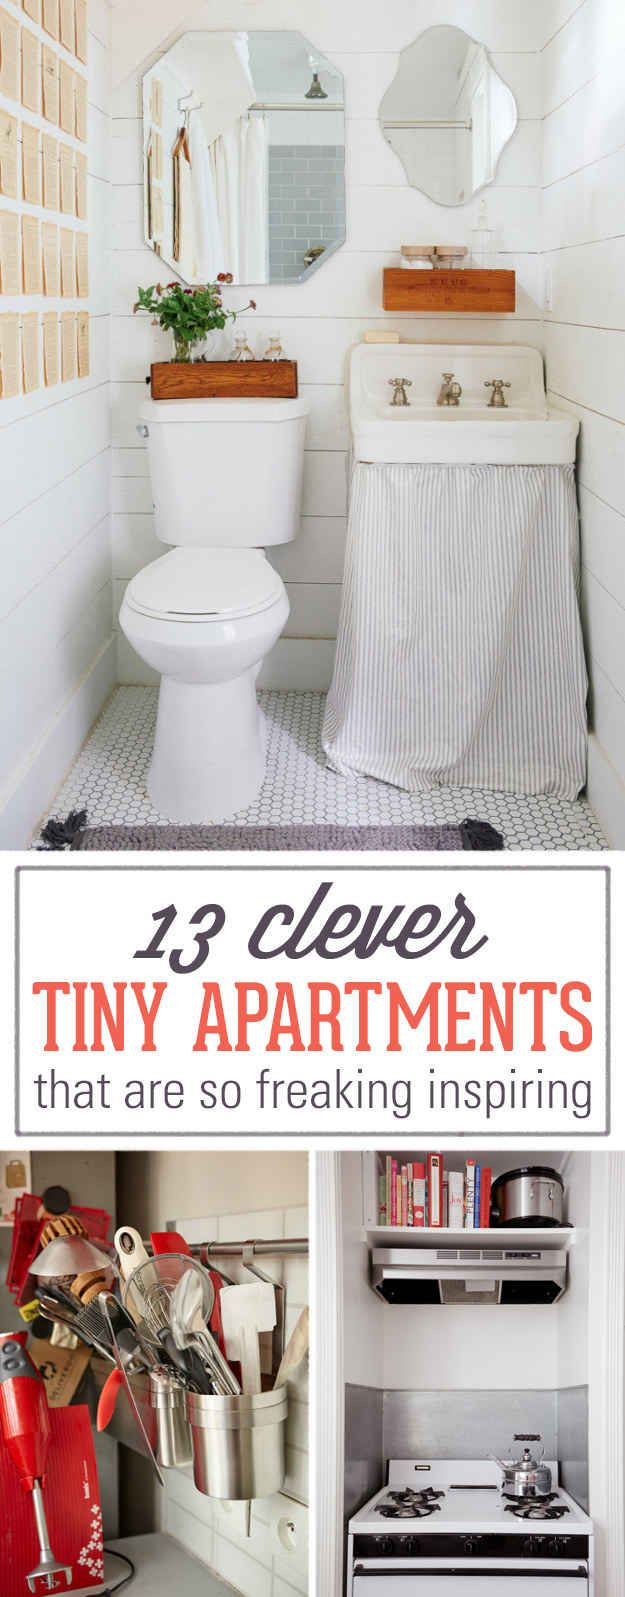 13 Clever Tiny Apartments That Are So Freaking Inspiring